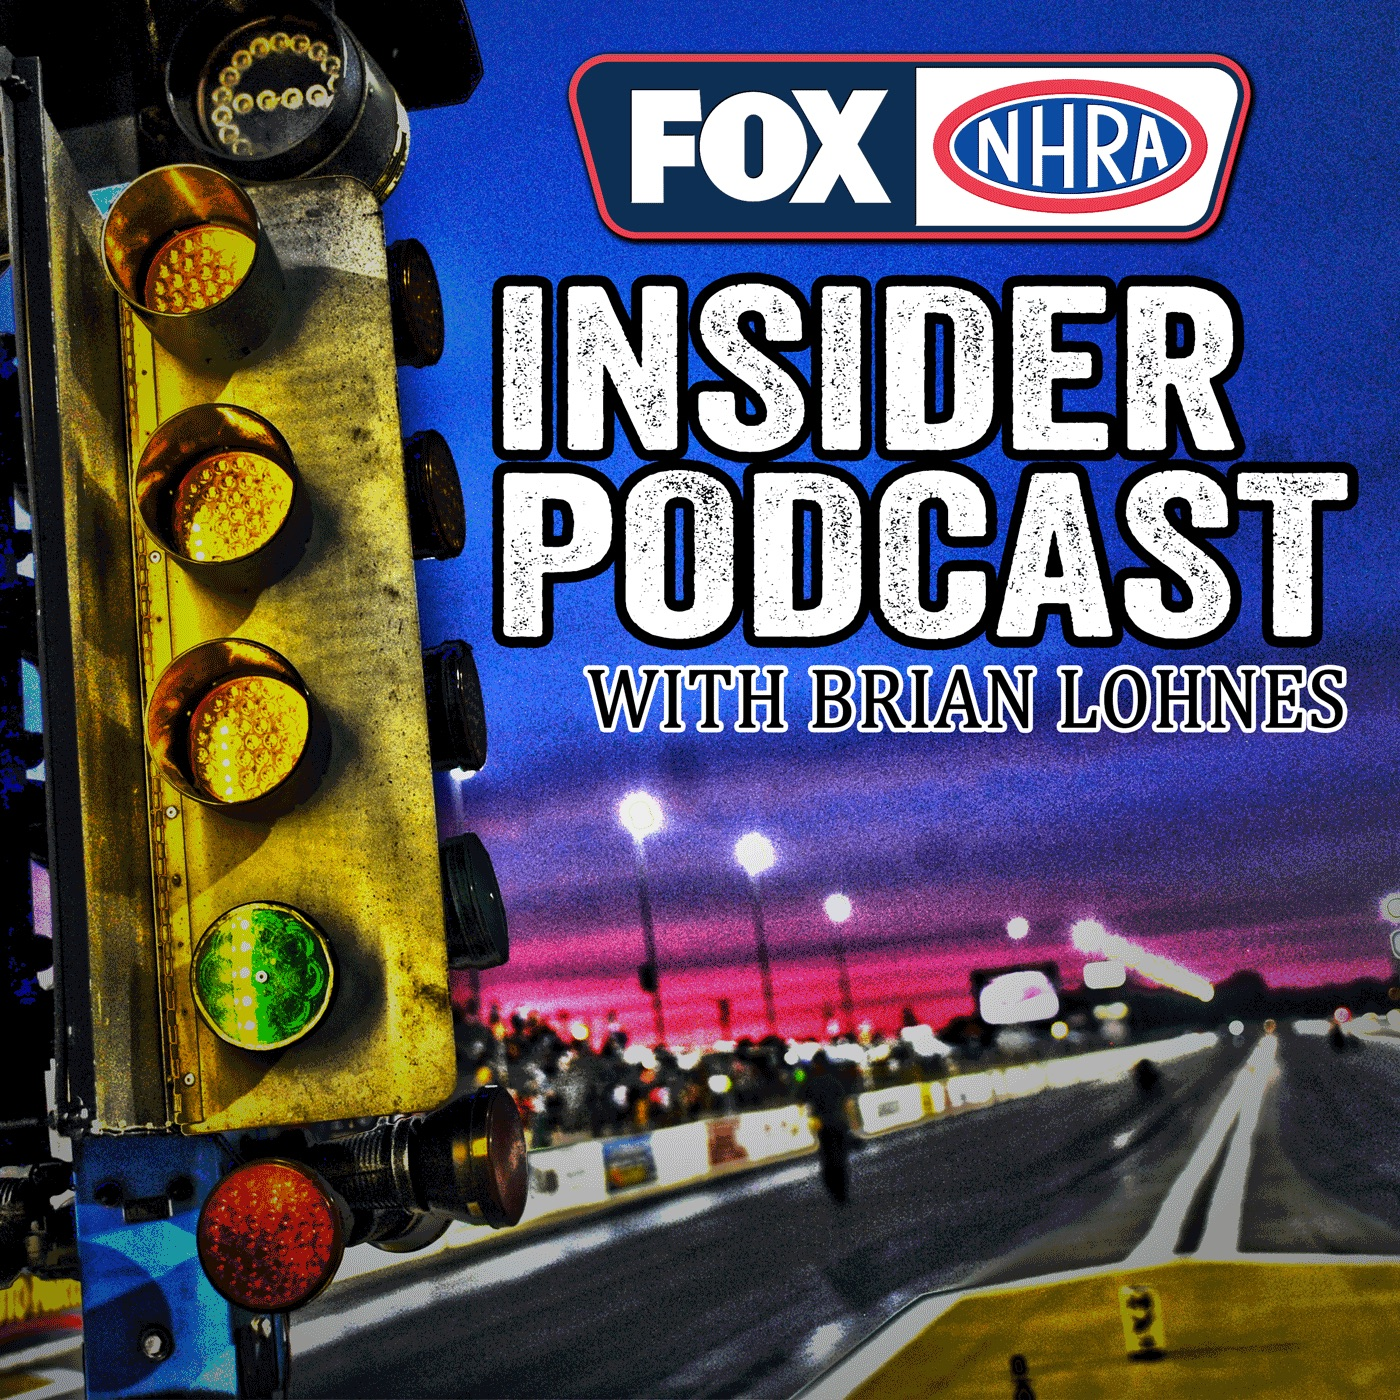 NHRA Insider Podcast: Going Mental – Lohnes Talks To Erica Enders and Shawn Langdon About Winning The US Nationals